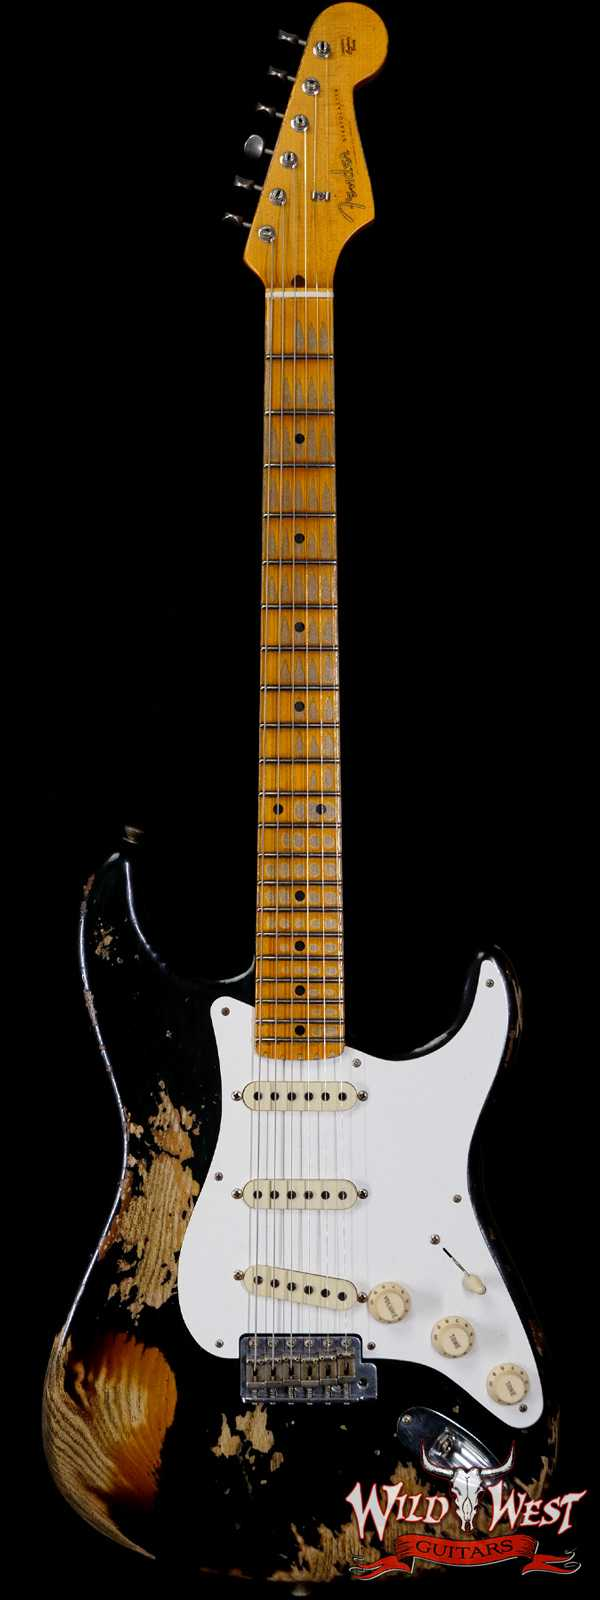 Fender Custom Shop Limited Edition 1957 Stratocaster Heavy Relic Hand-Wound Pickups Black over 2 Tone Sunburst